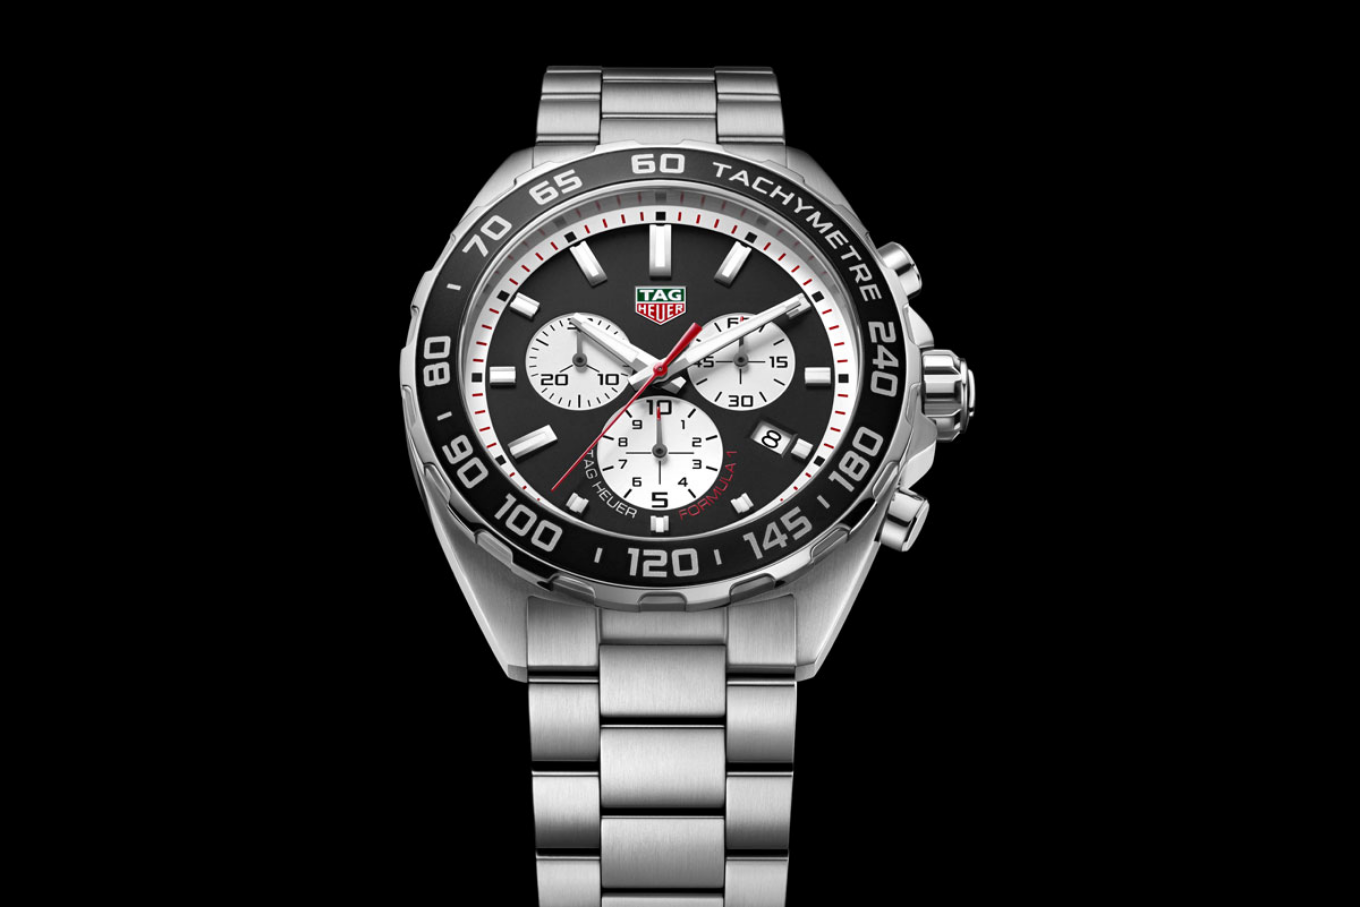 Shop all TAG Heuer watches - Image